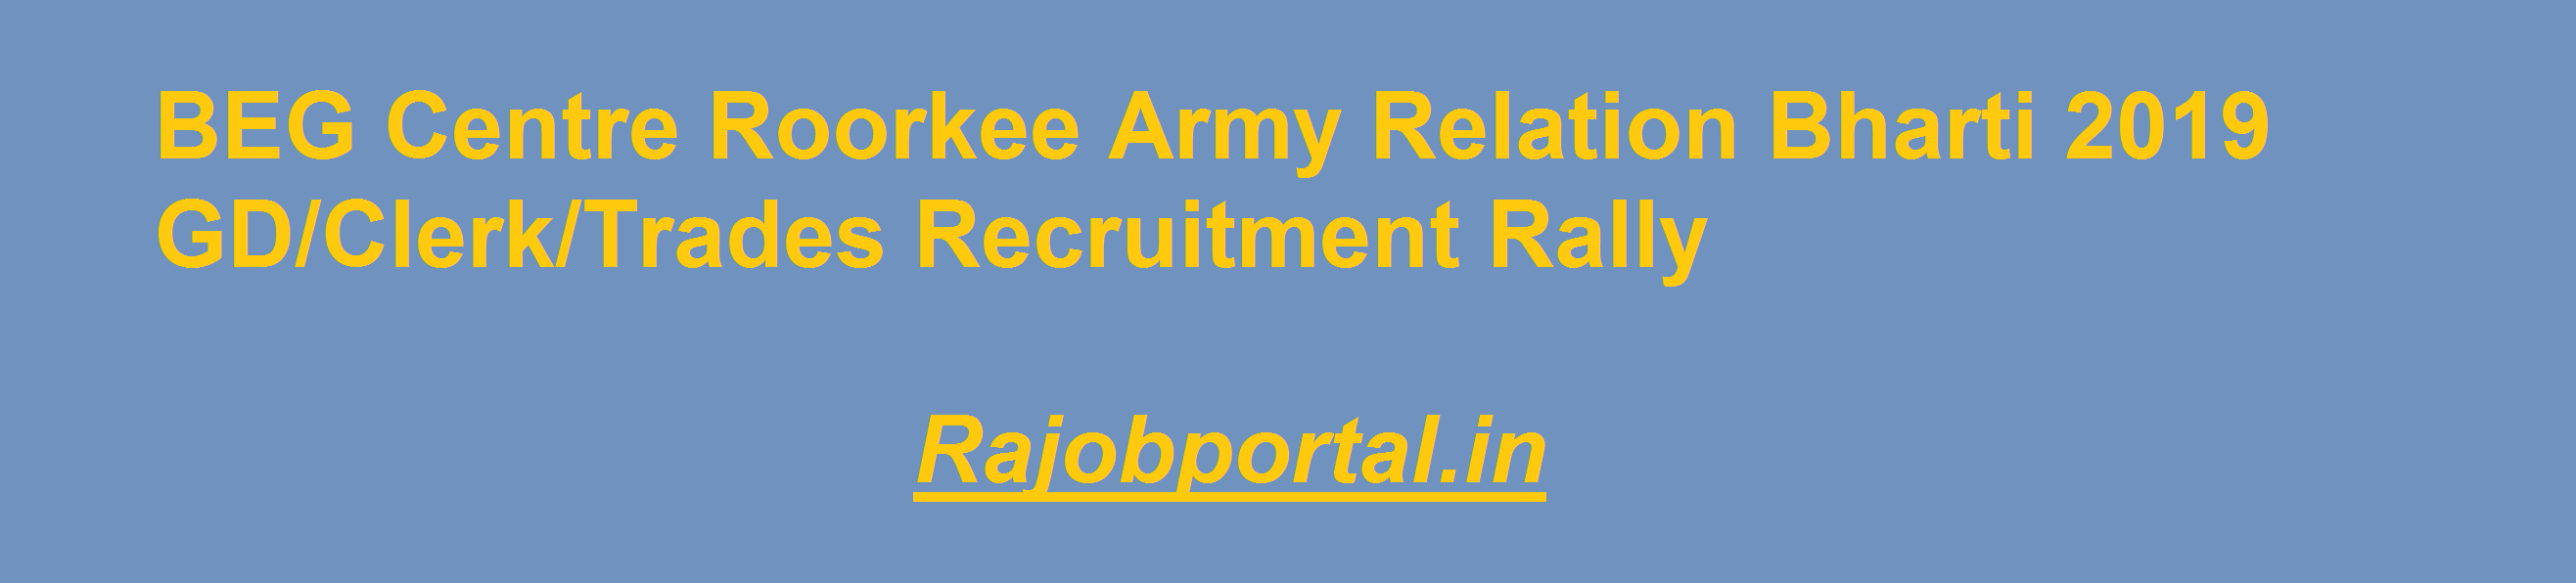 BEG Centre Roorkee Army Relation Bharti 2019